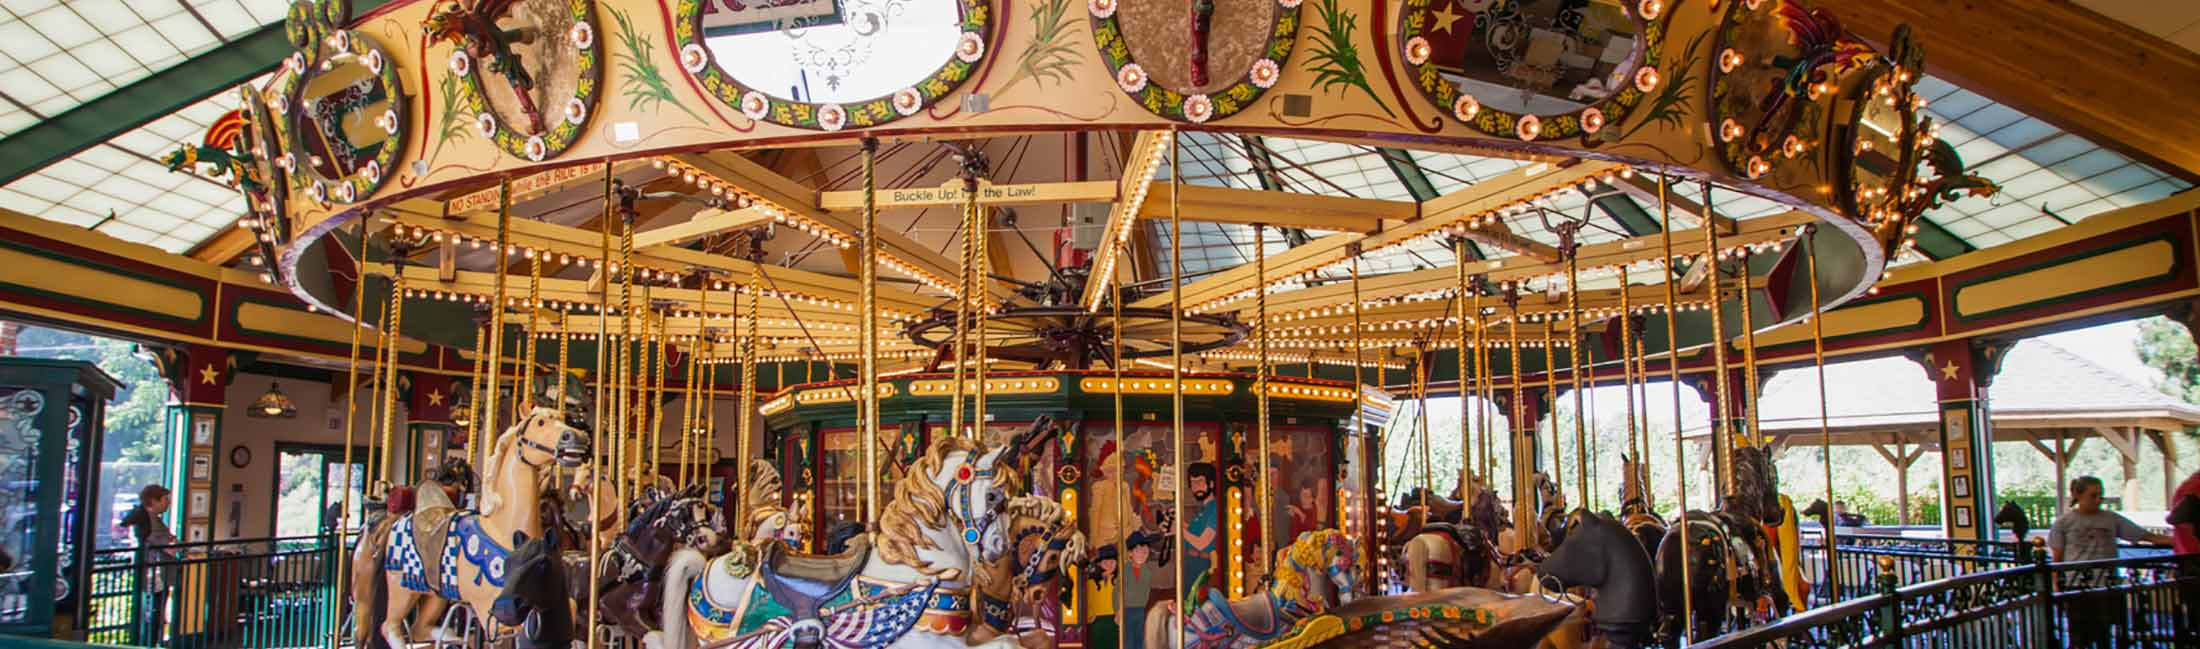 Visit A Carousel For Missoula And Dragon Hollow